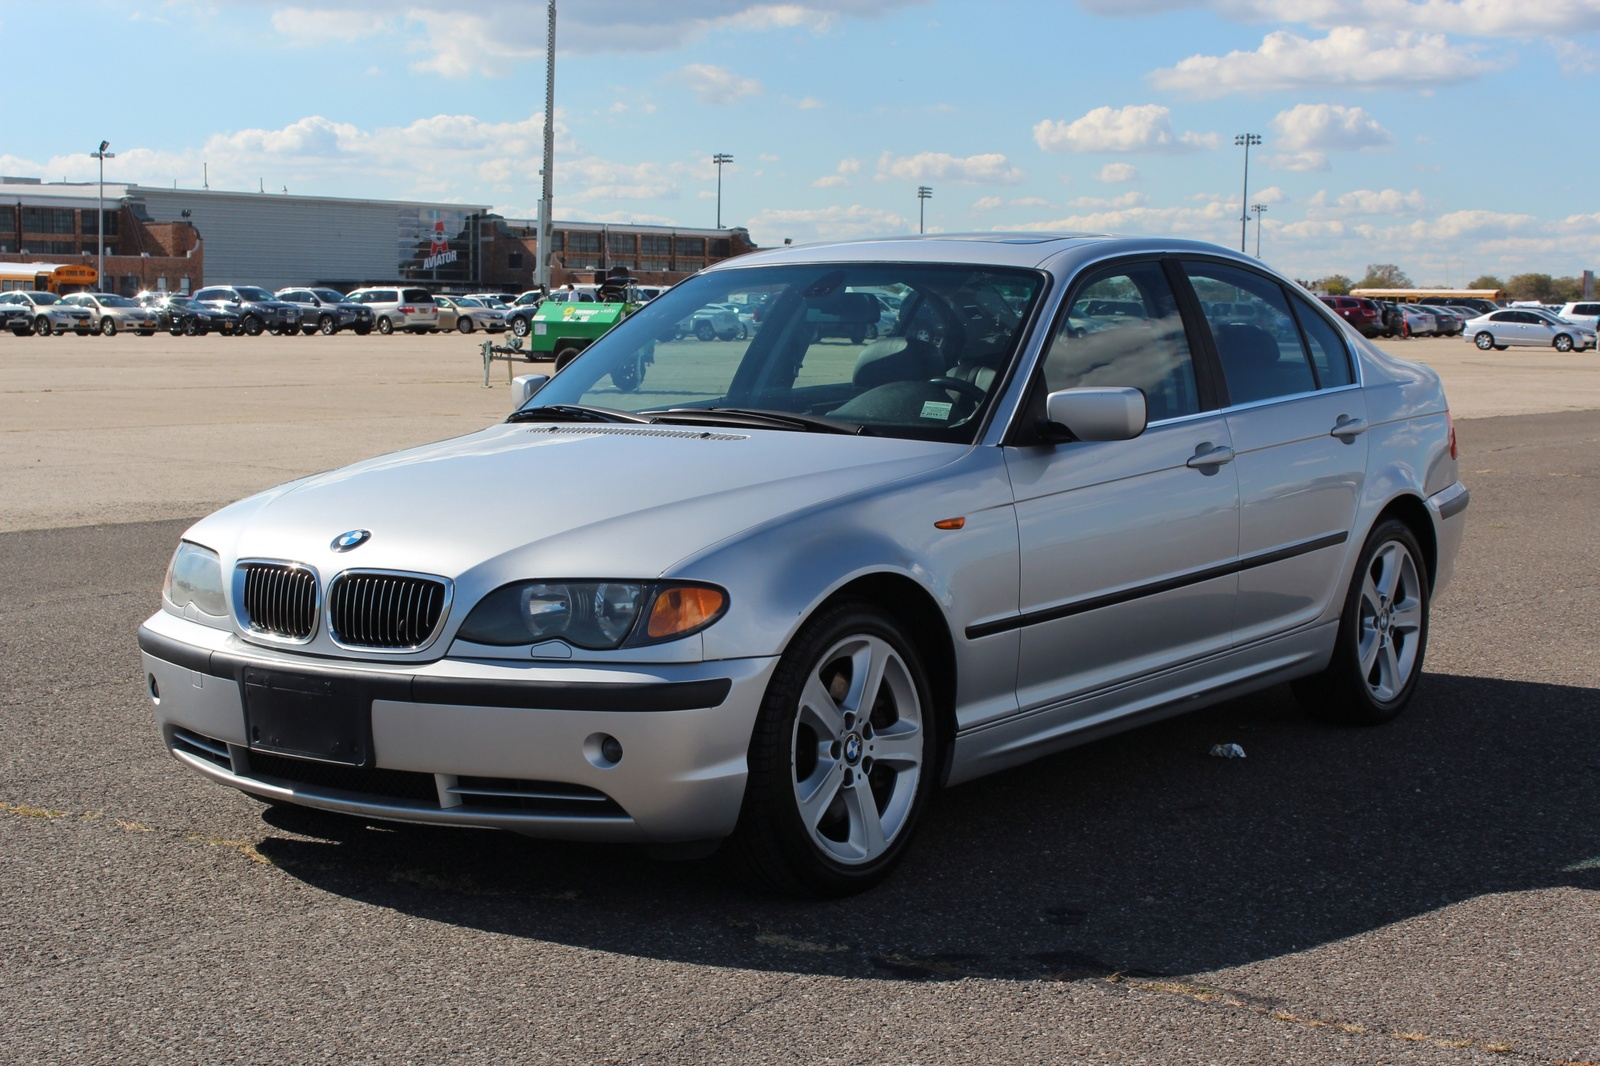 BMW 3 series 335xi 2004 photo - 10